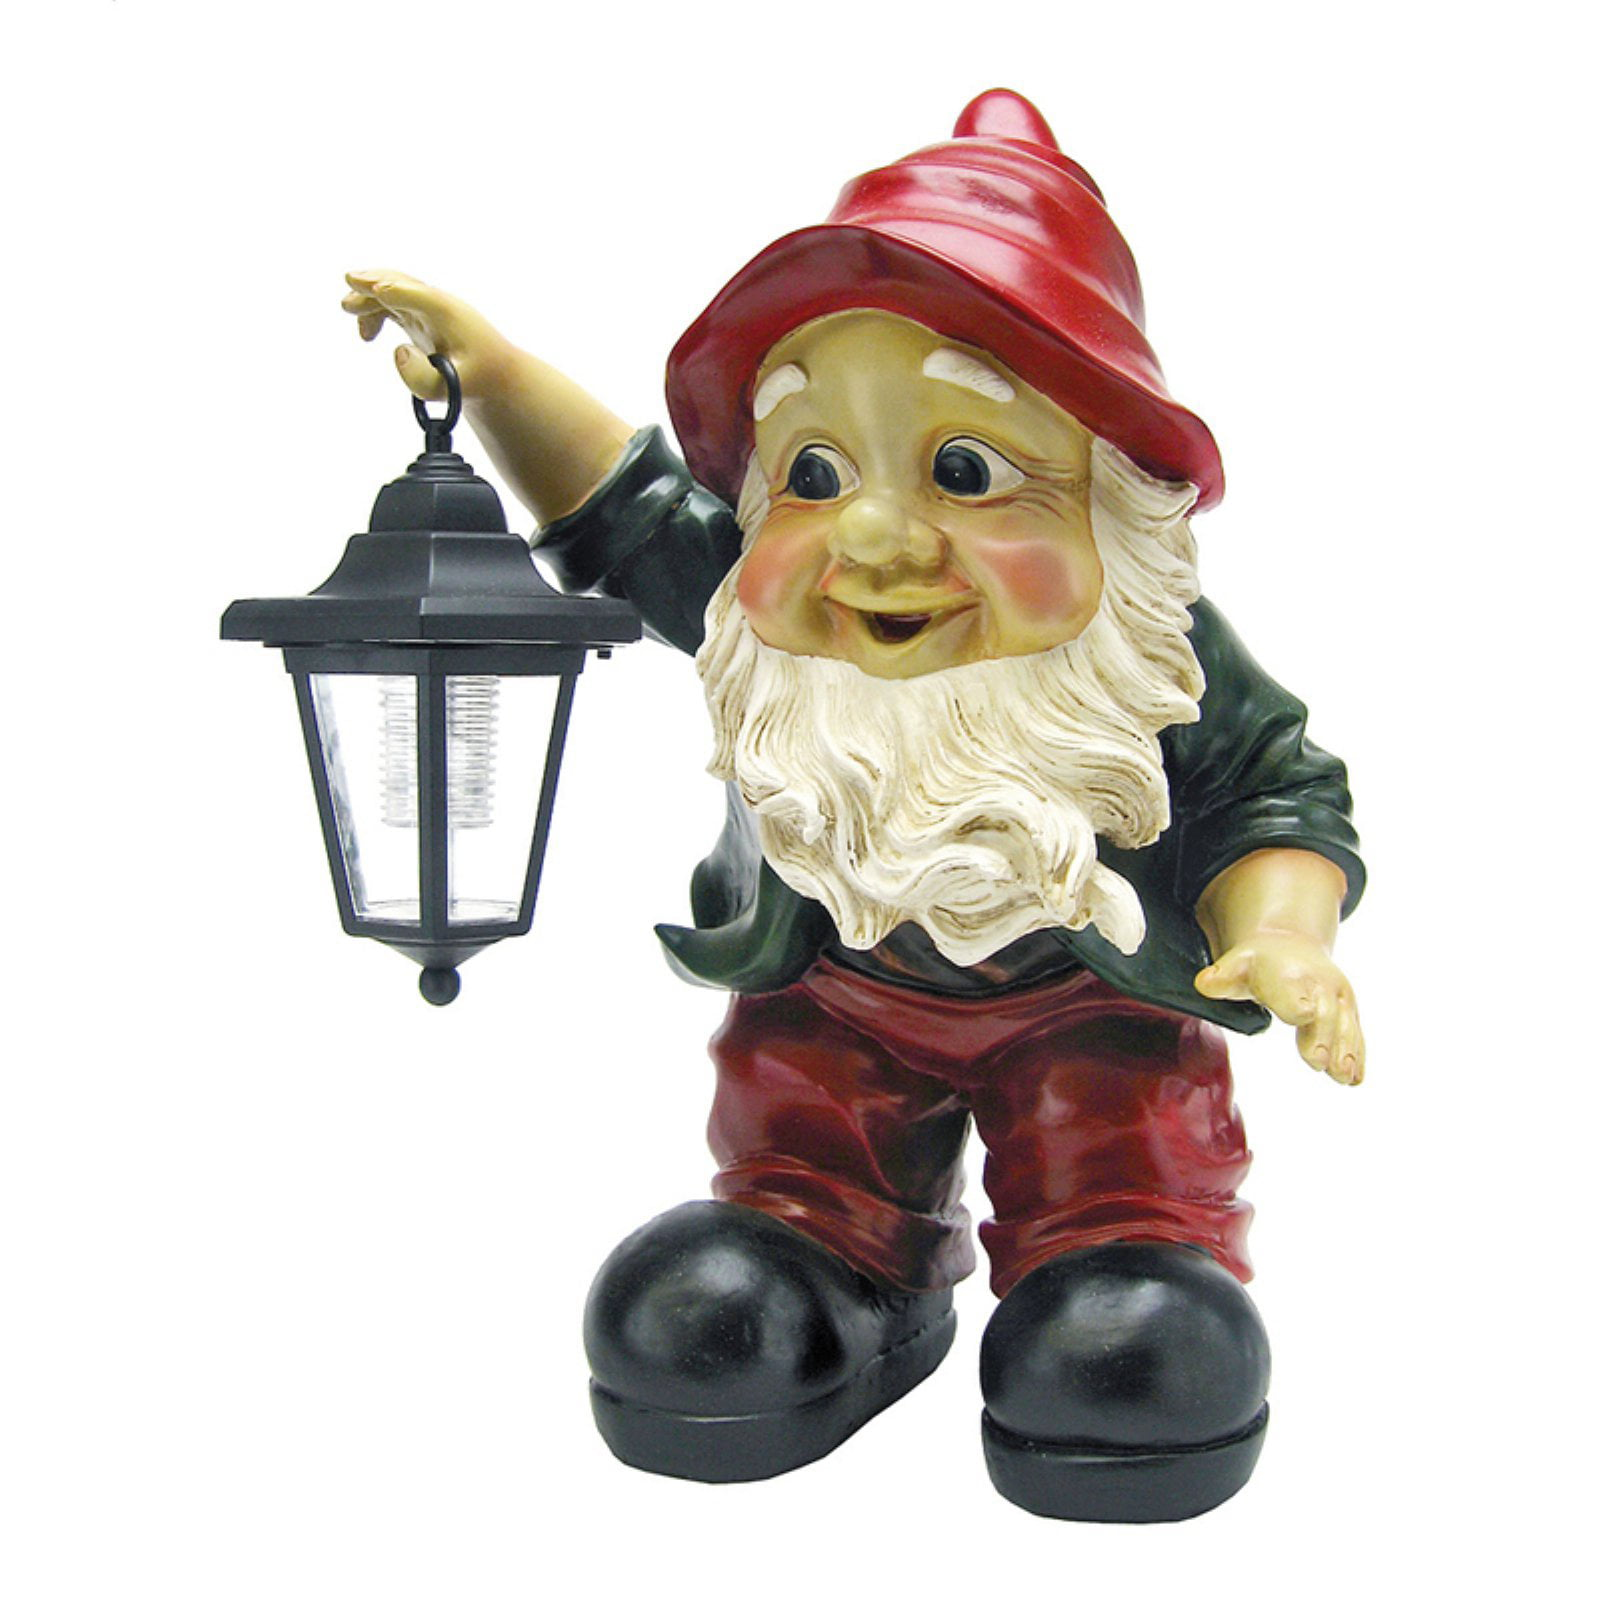 Design Toscano Edison with the Lighted Lantern Garden Gnome Statue by Design Toscano